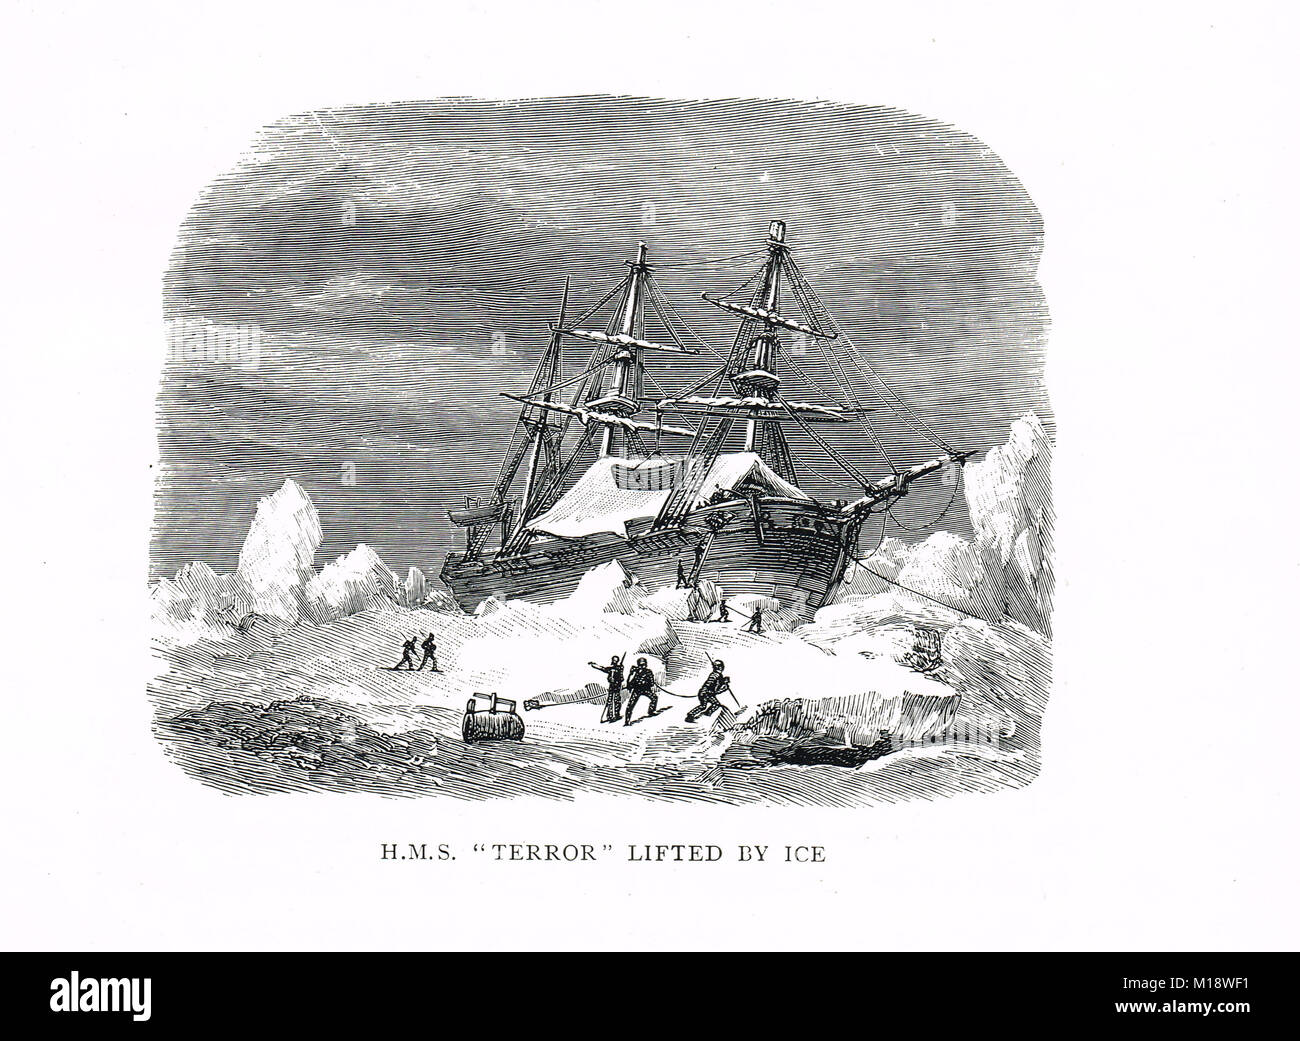 HMS Terror lifted by Ice during Captain George Back's Arctic expedition to Hudson Bay, 1836-1837 - Stock Image